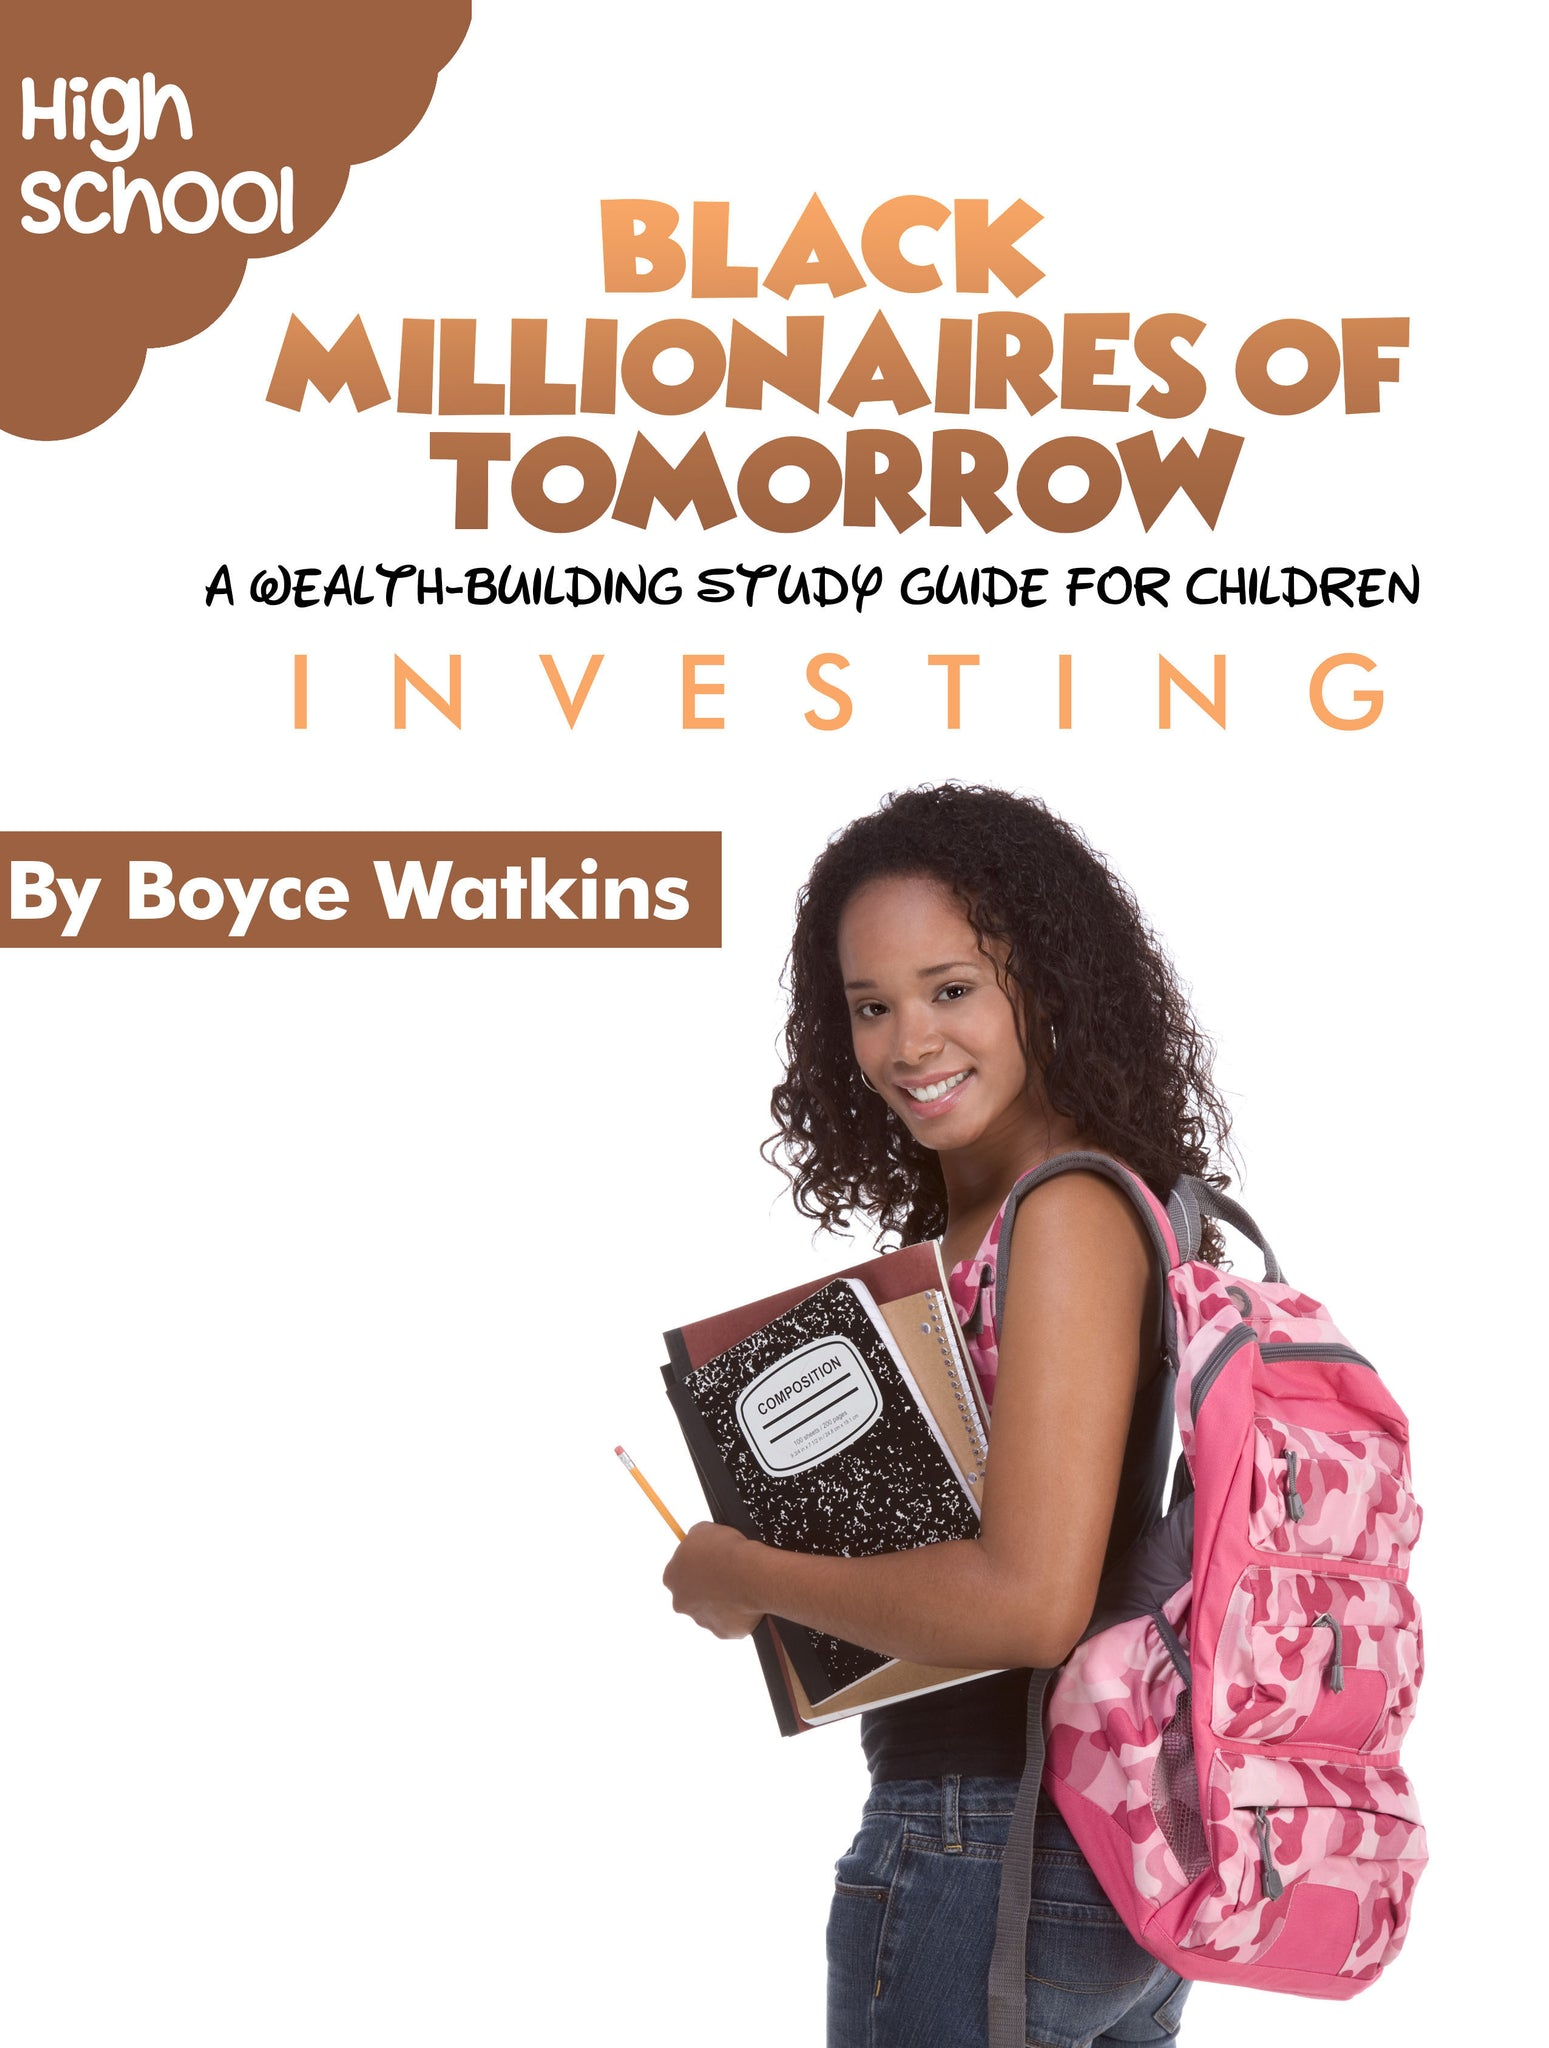 The Black Millionaires of Tomorrow Workbook (Highschool) - Investing